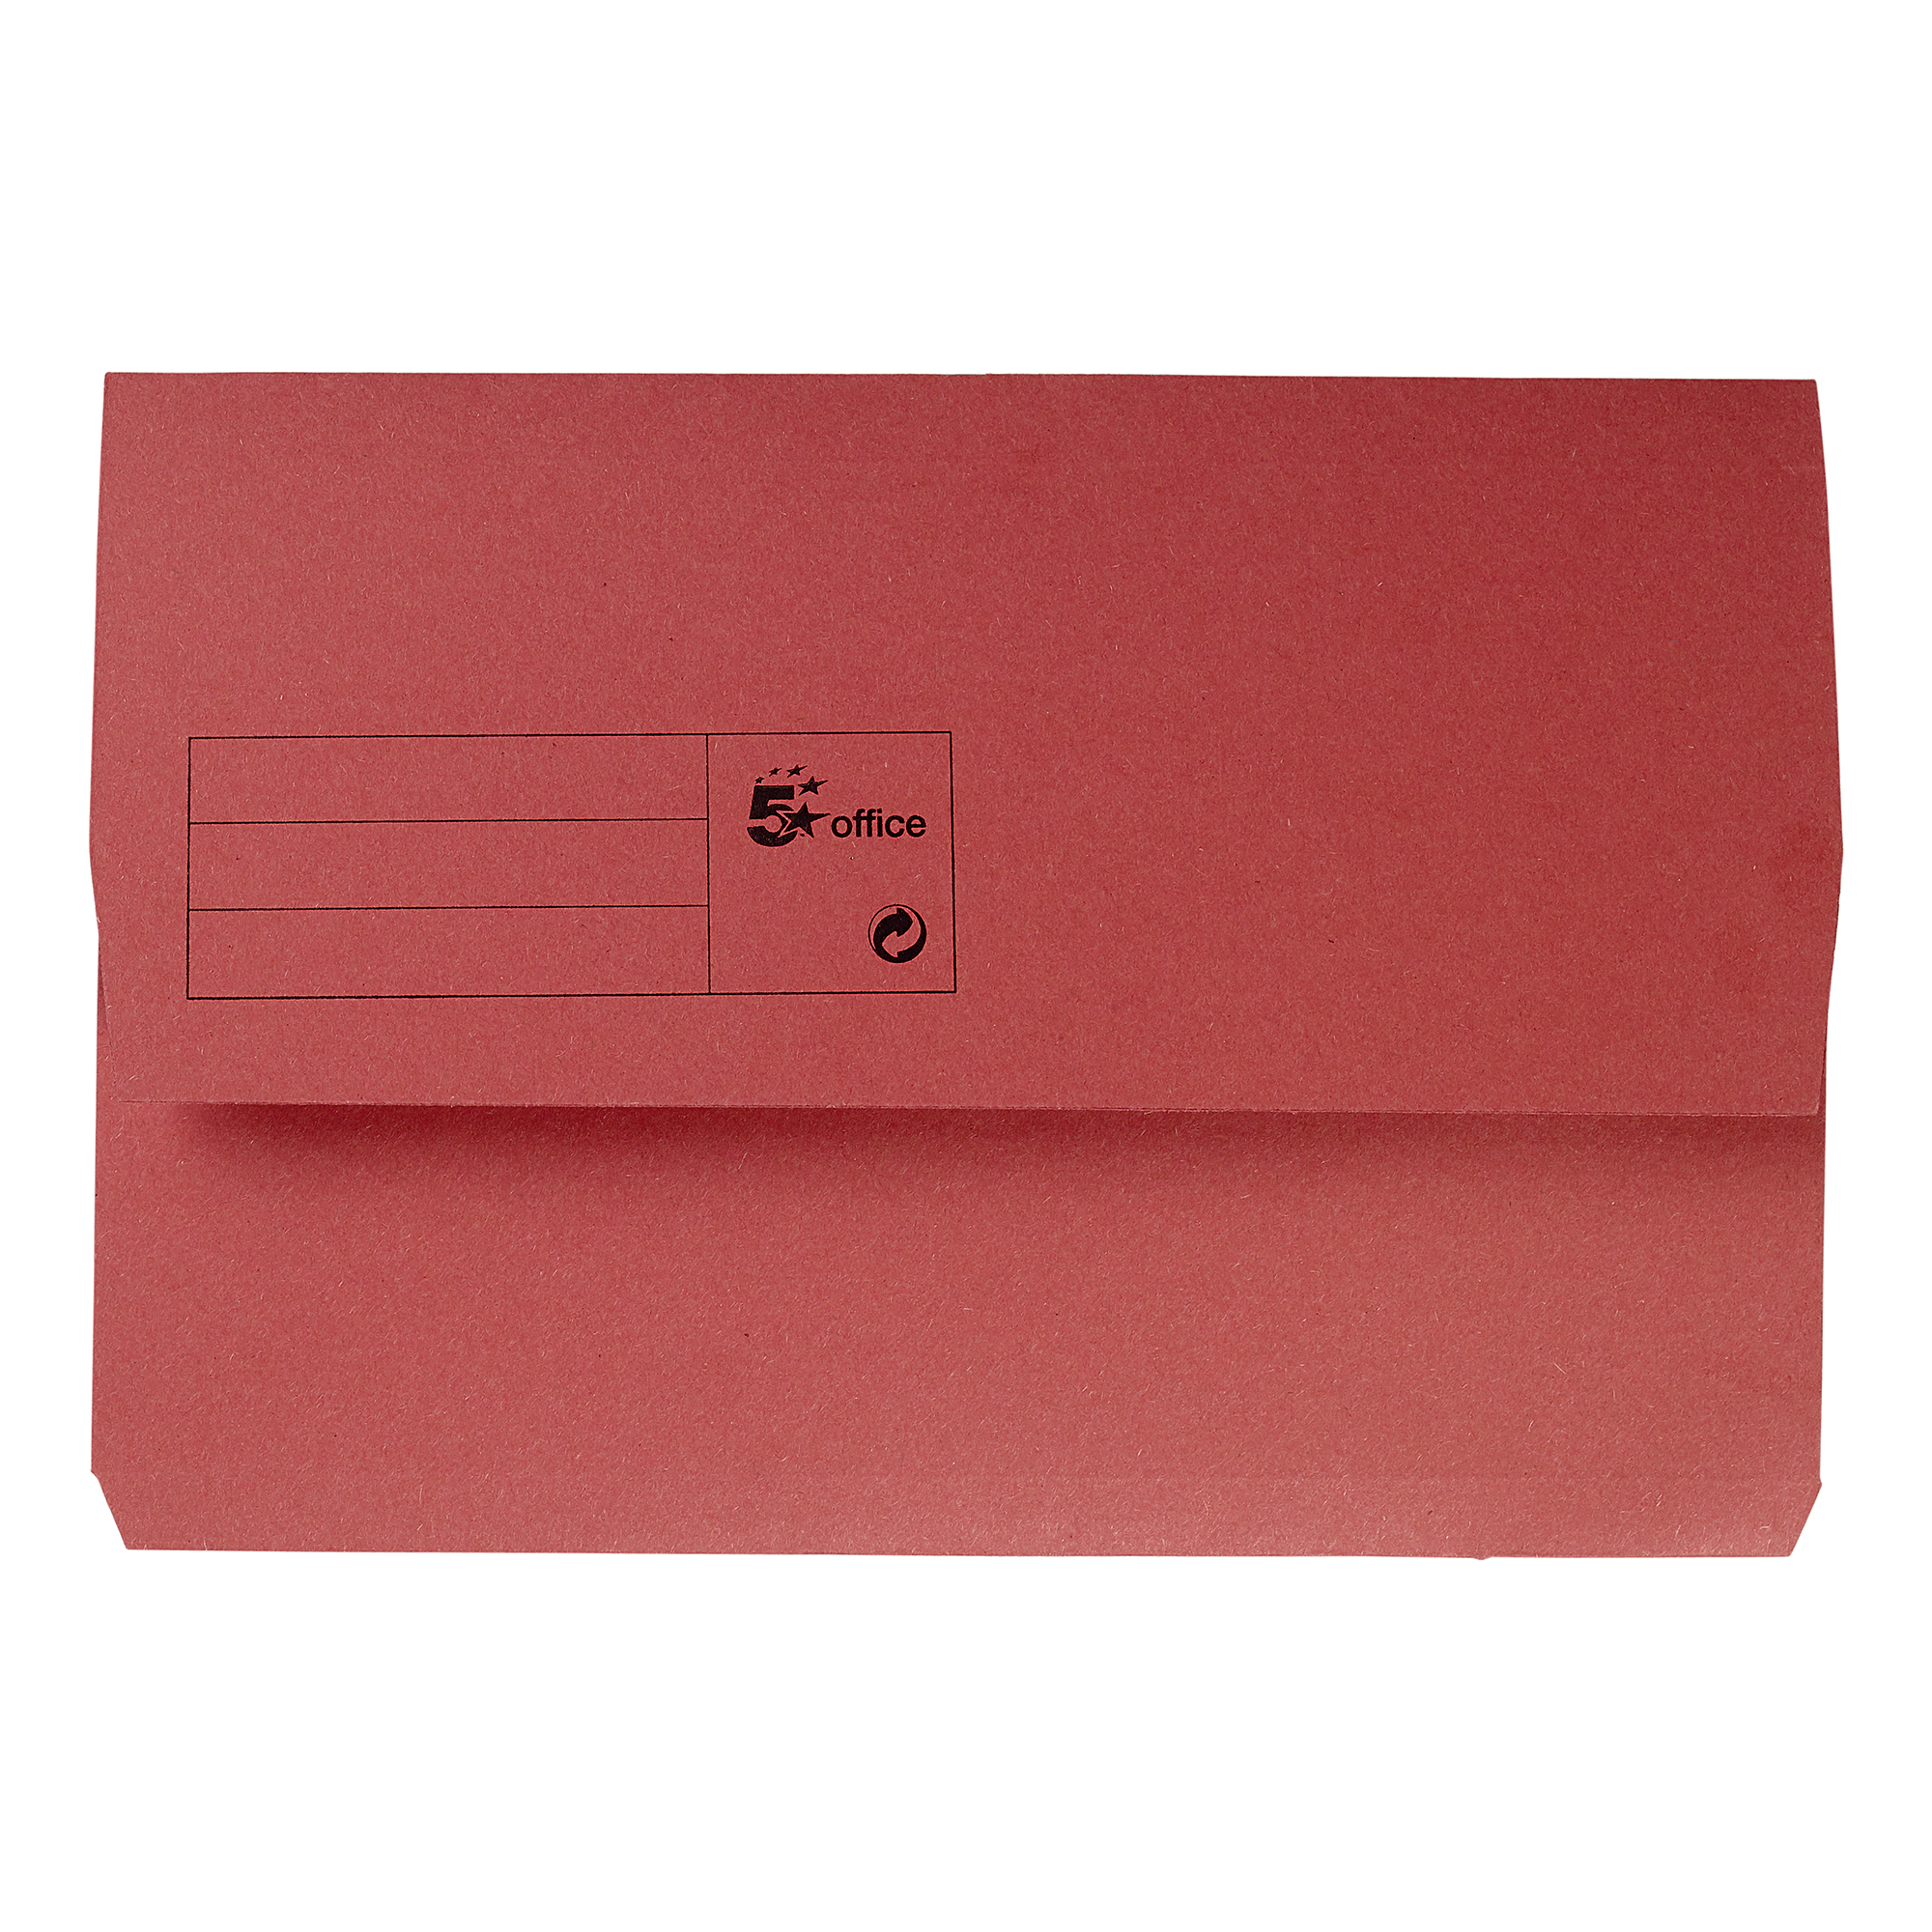 Document Wallets 5 Star Office Document Wallet Half Flap 285gsm Recycled Capacity 32mm Foolscap Red Pack 50